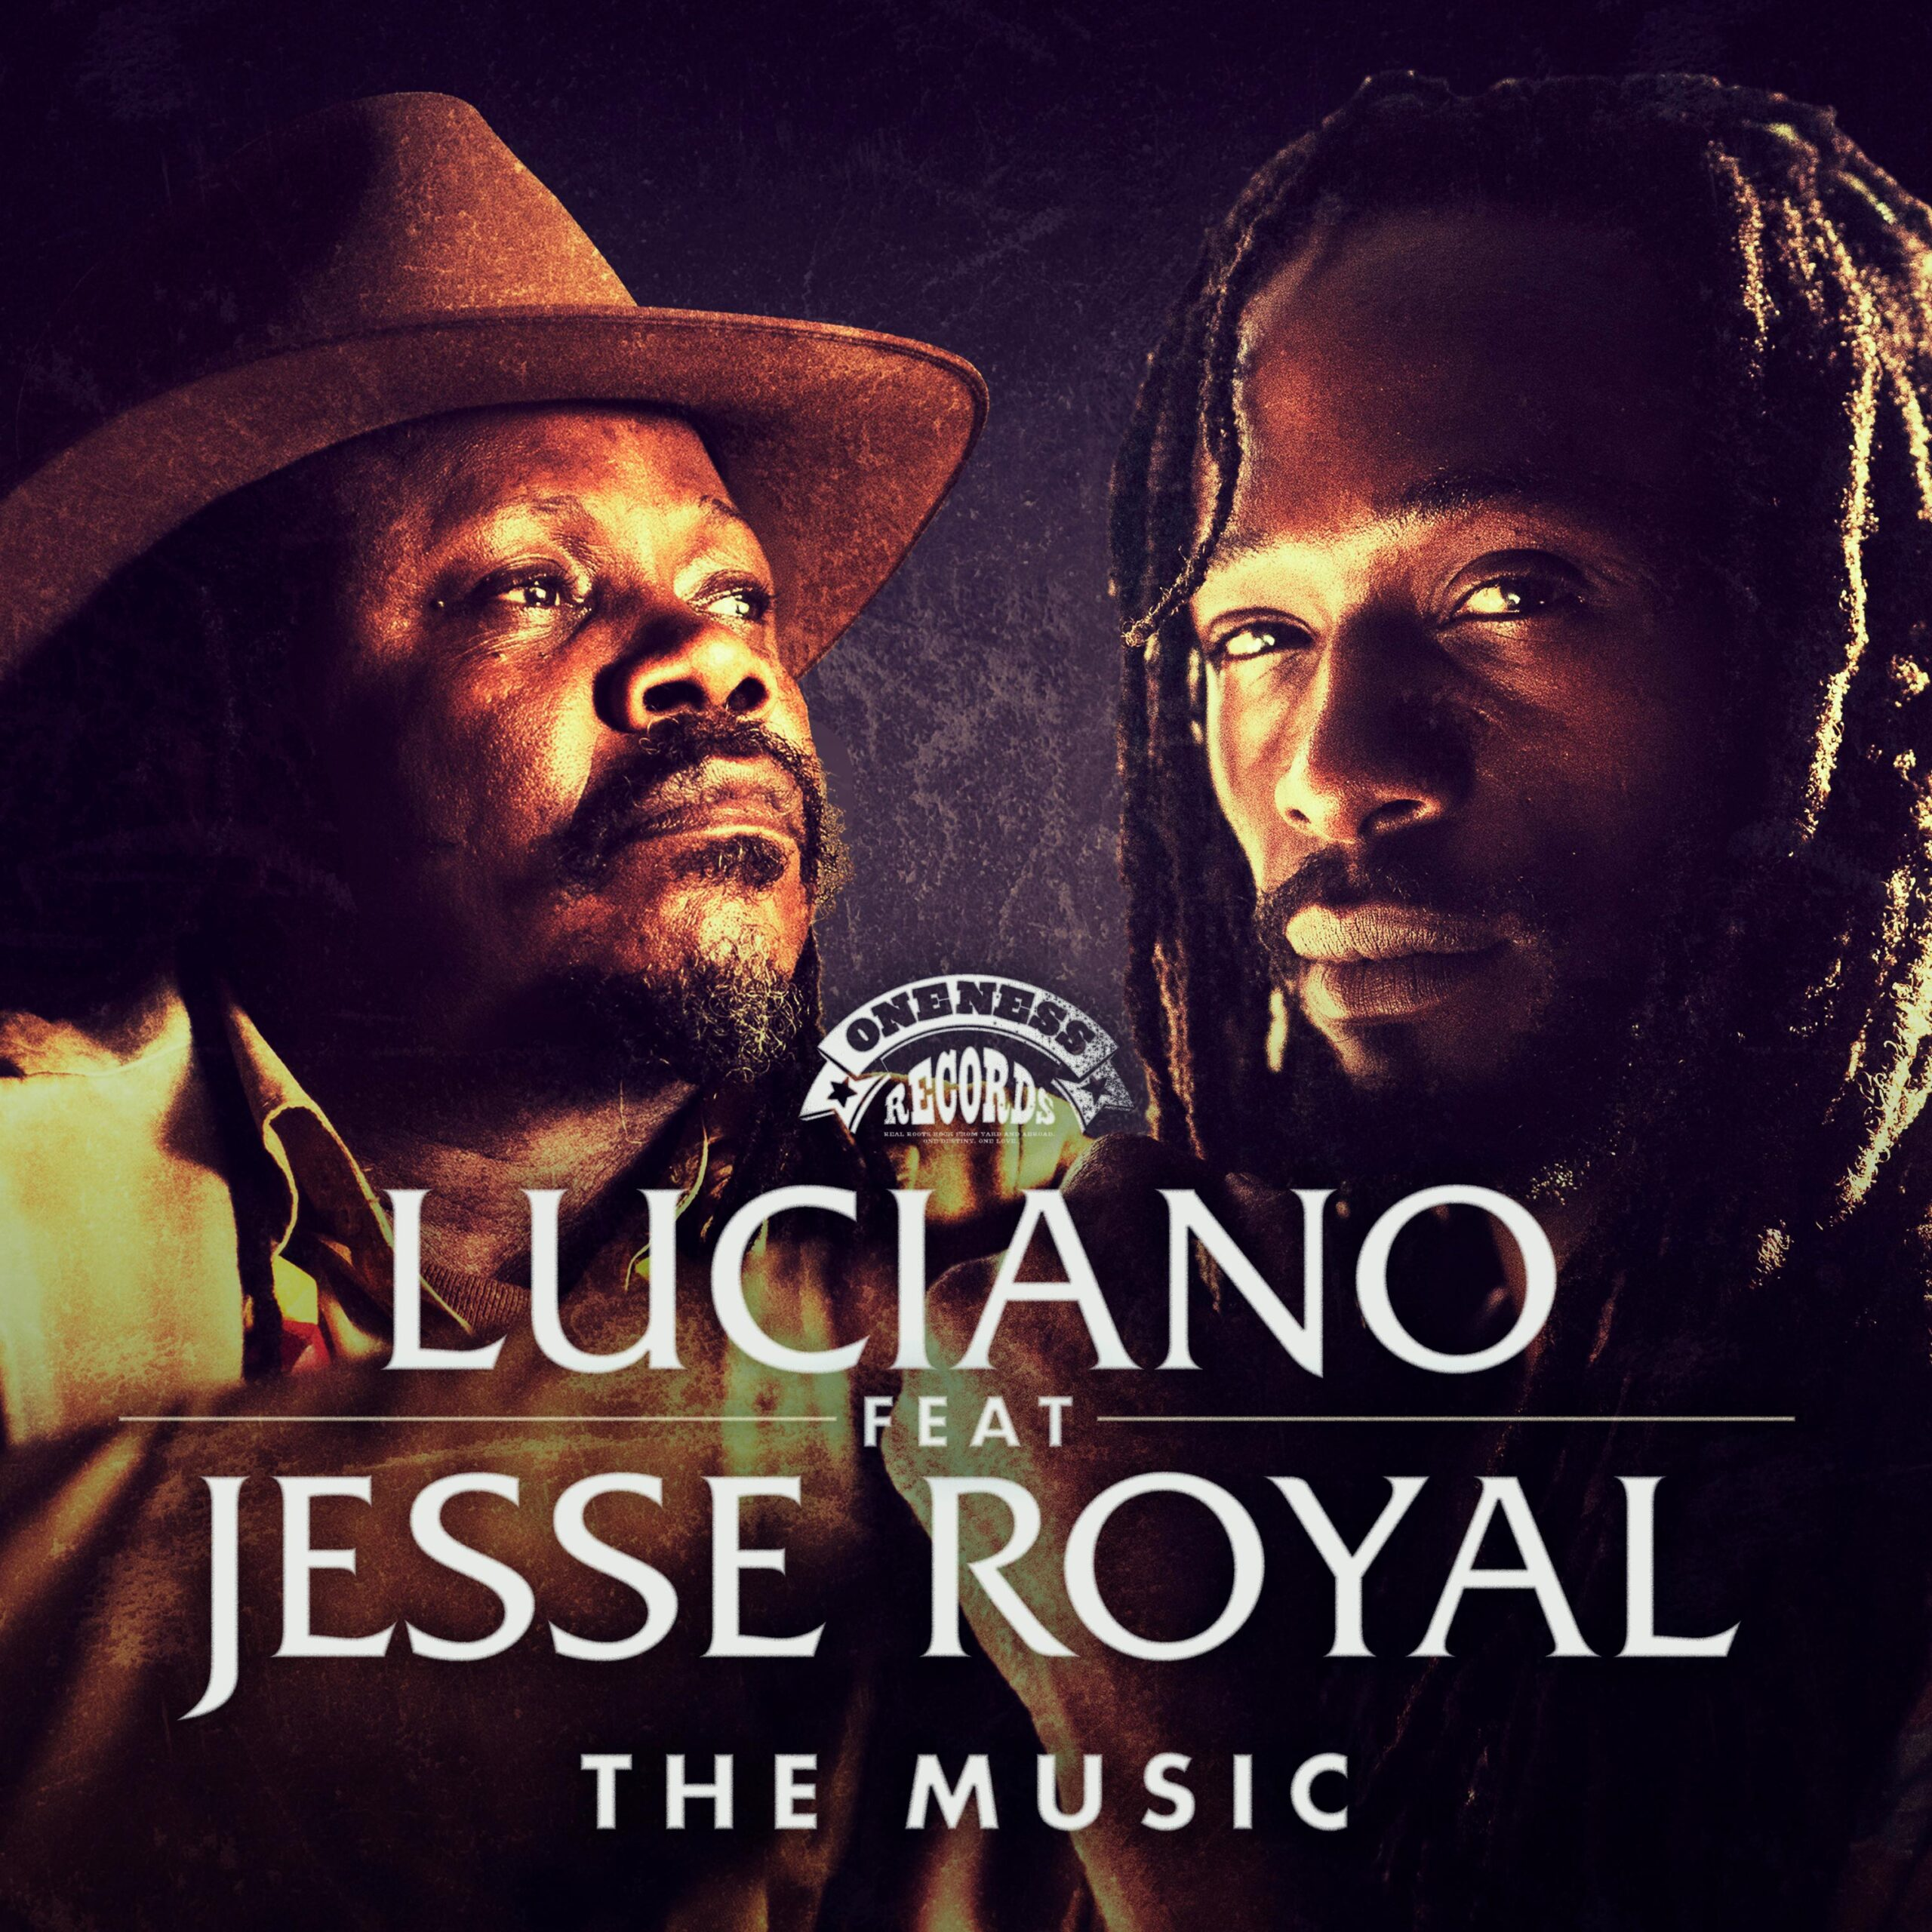 Luciano The Music feat. Jesse Royal